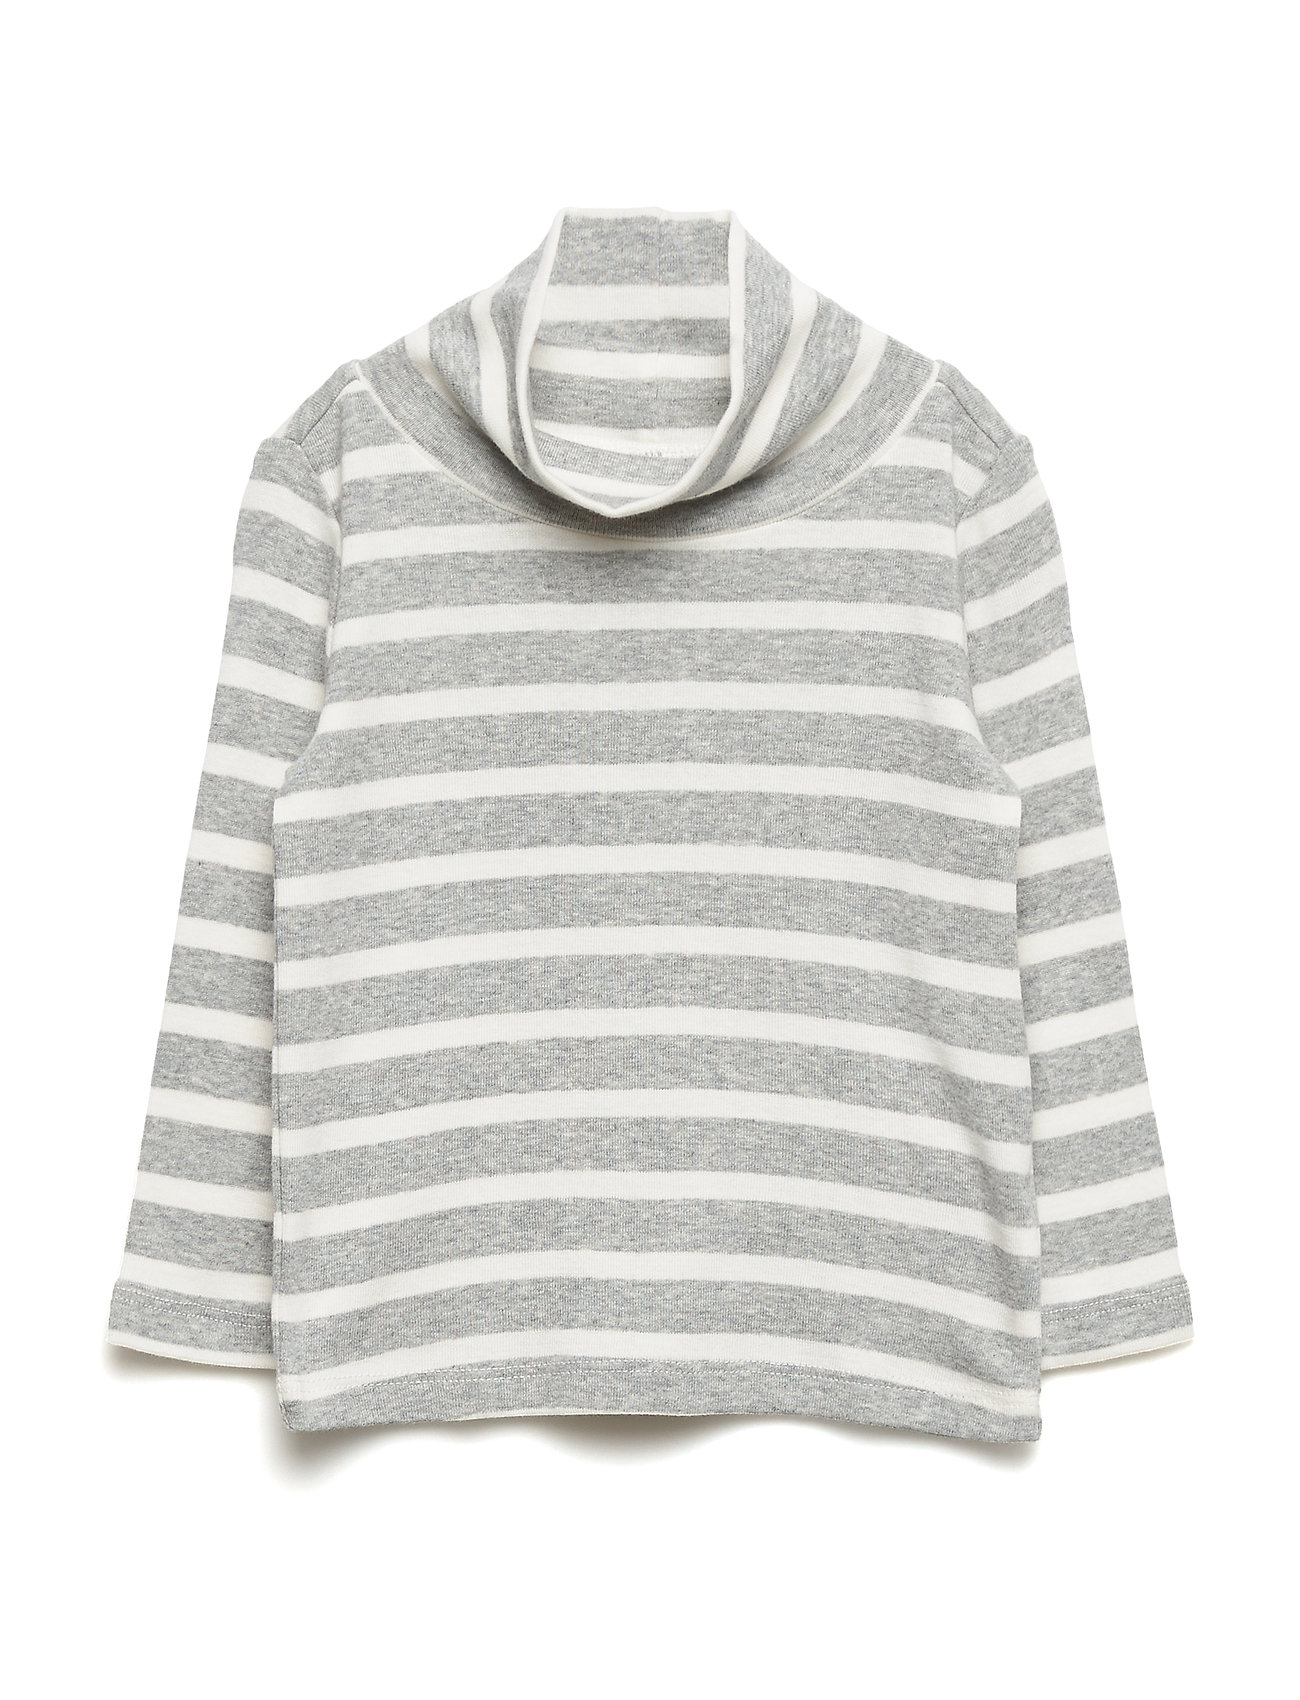 Image of Toddler Turtleneck Pullover Striktrøje Grå GAP (3406207885)